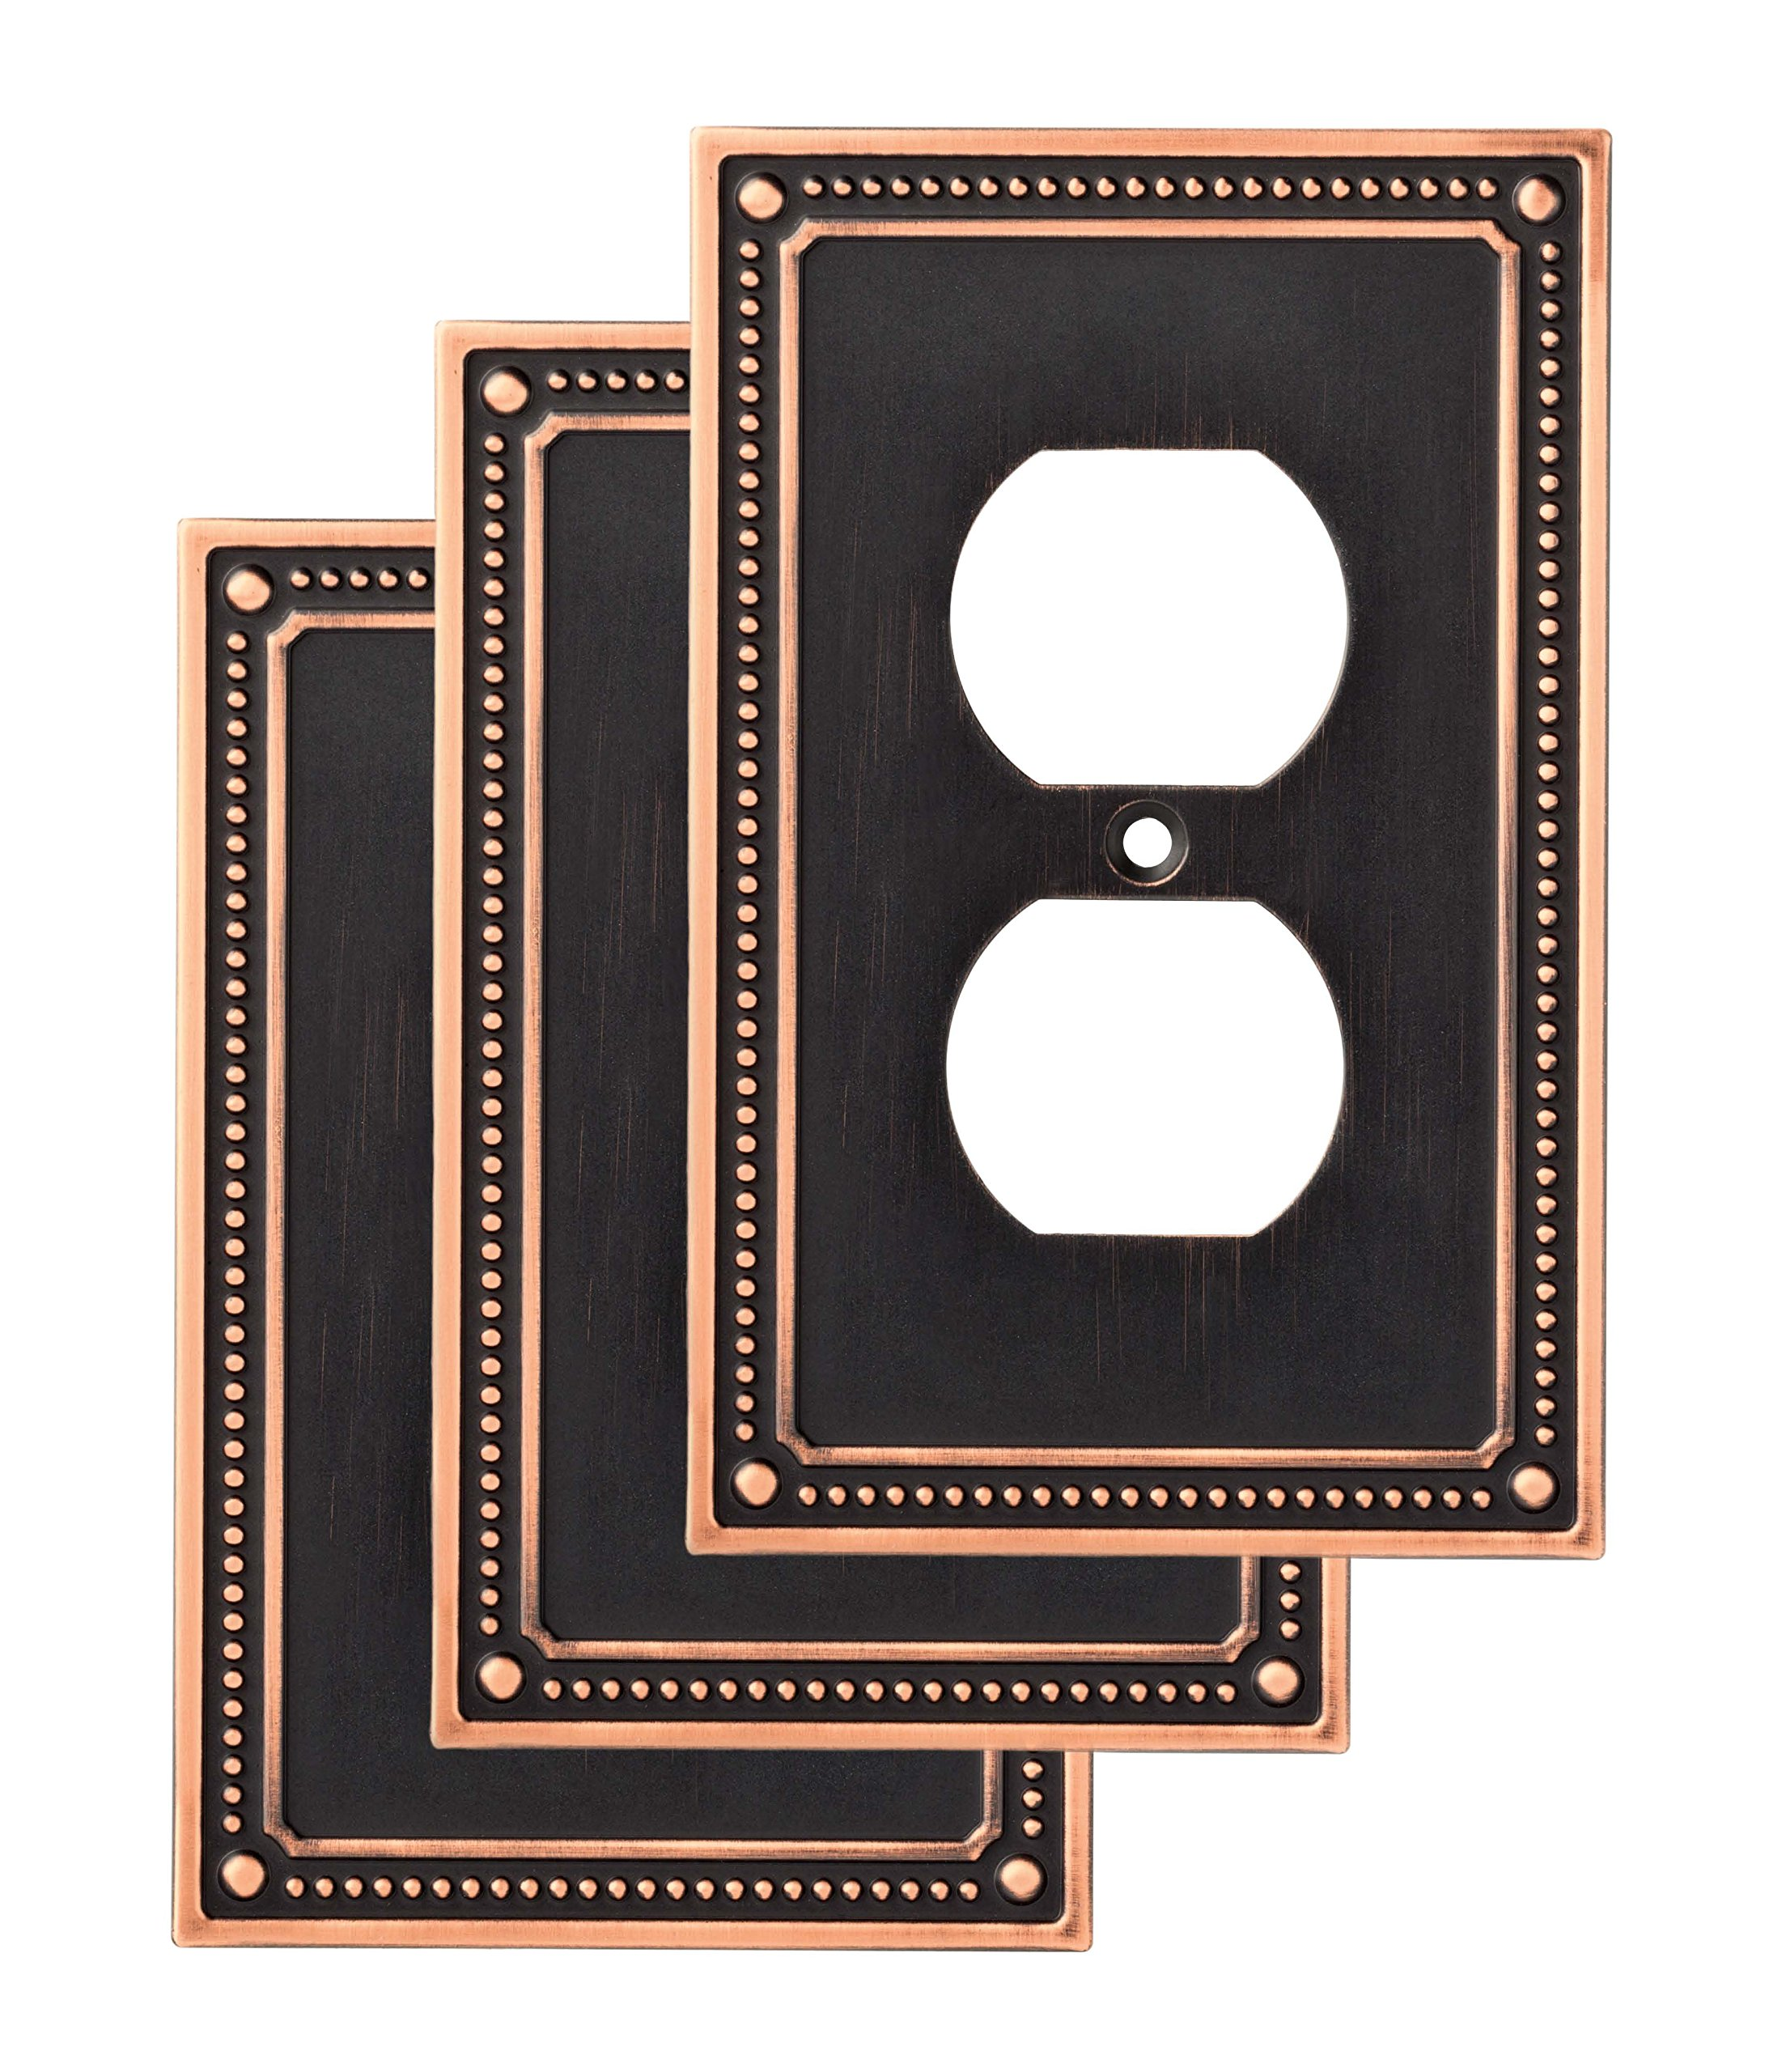 Franklin Brass W35059V-VBC-C Classic Beaded Single Duplex Wall Plate/Switch Plate/Cover (3 Pack) with Copper Highlights, Bronze